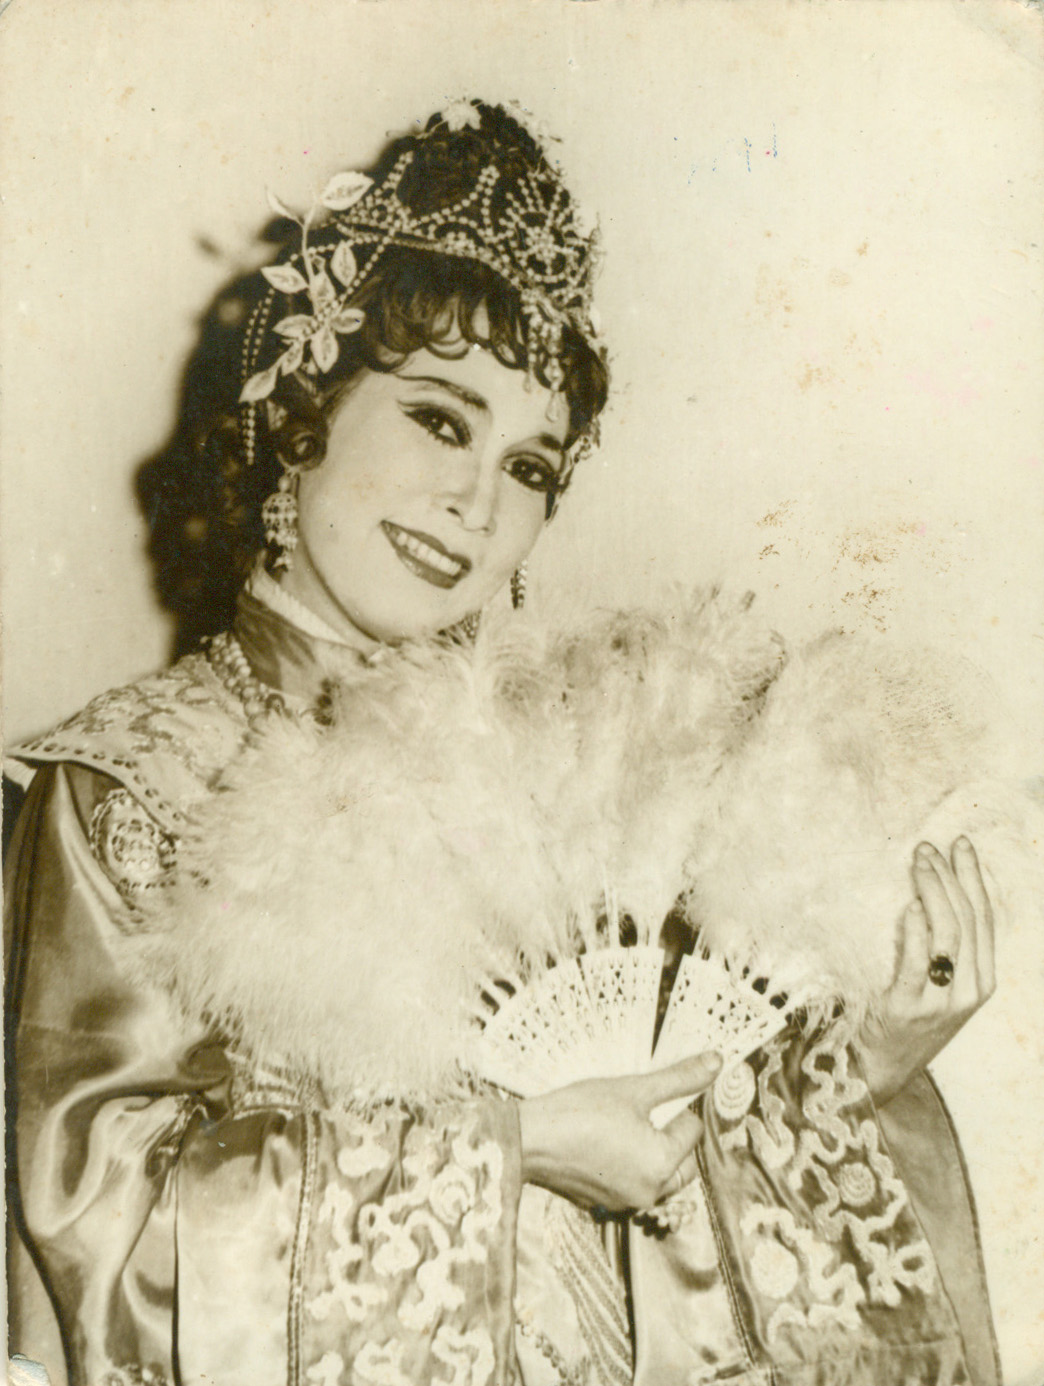 Actress Bich Hanh's biography and memories